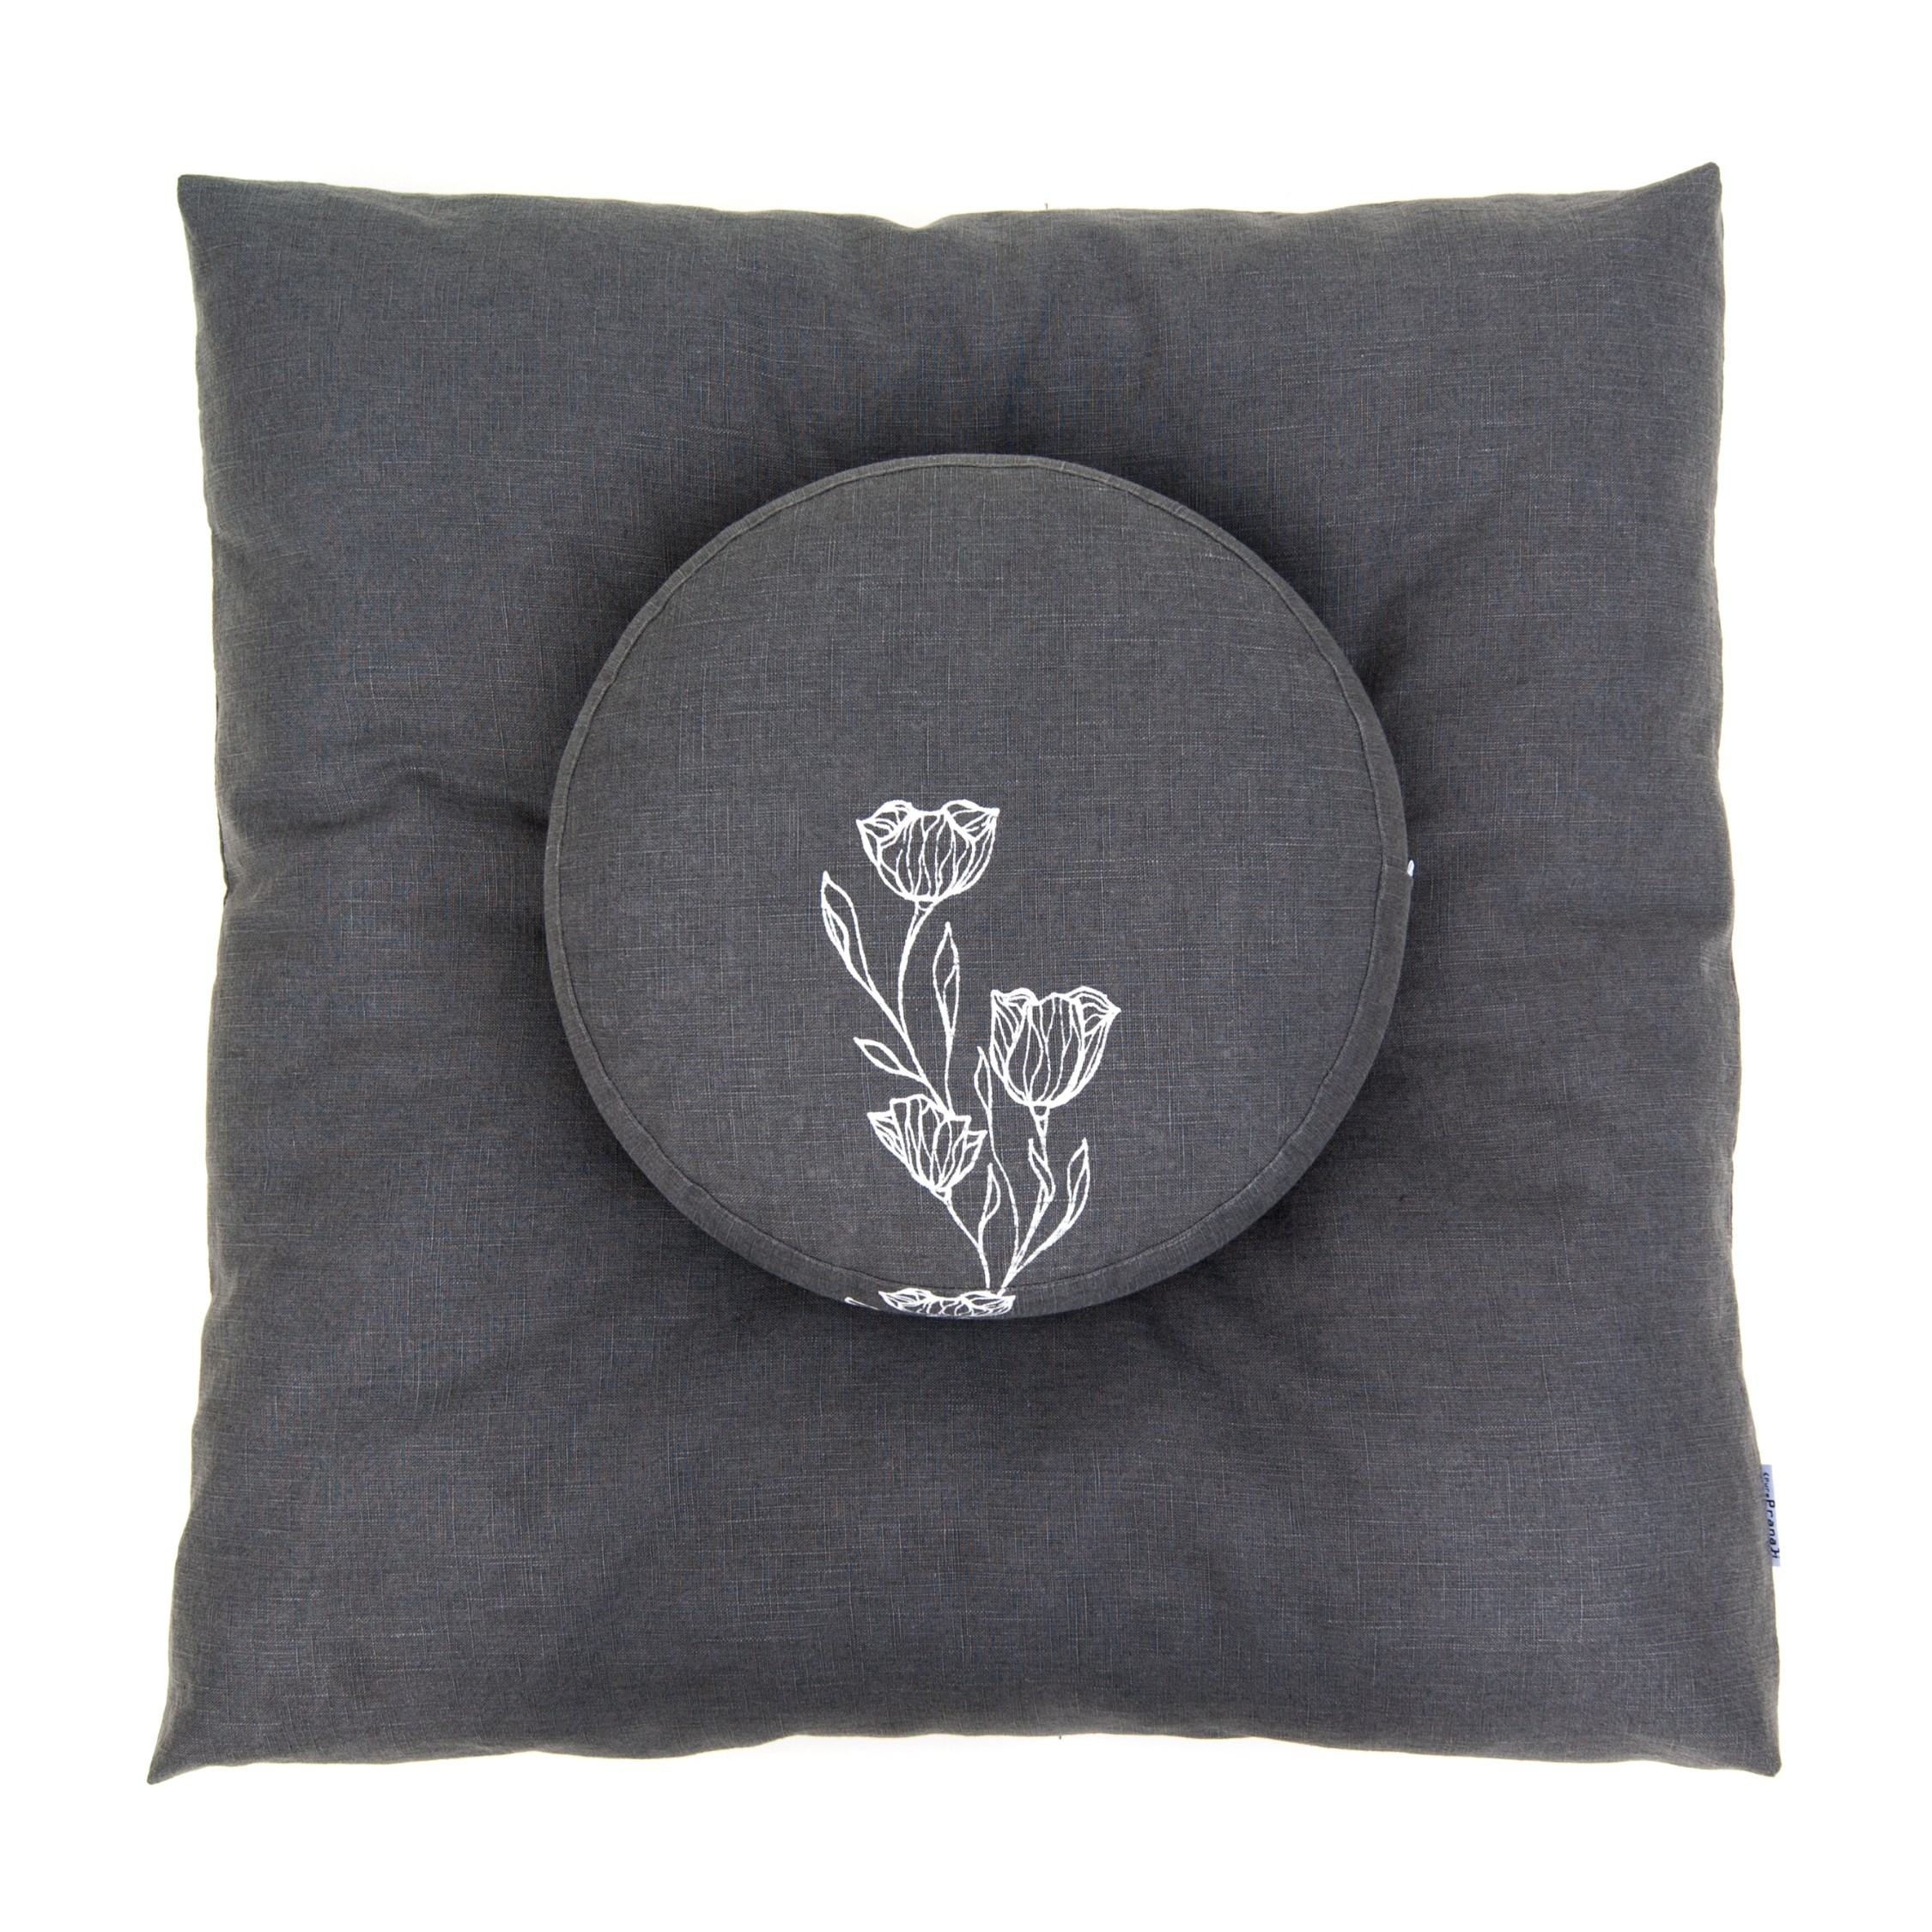 Minimalistic and floral meditation set by Pure Prana Label